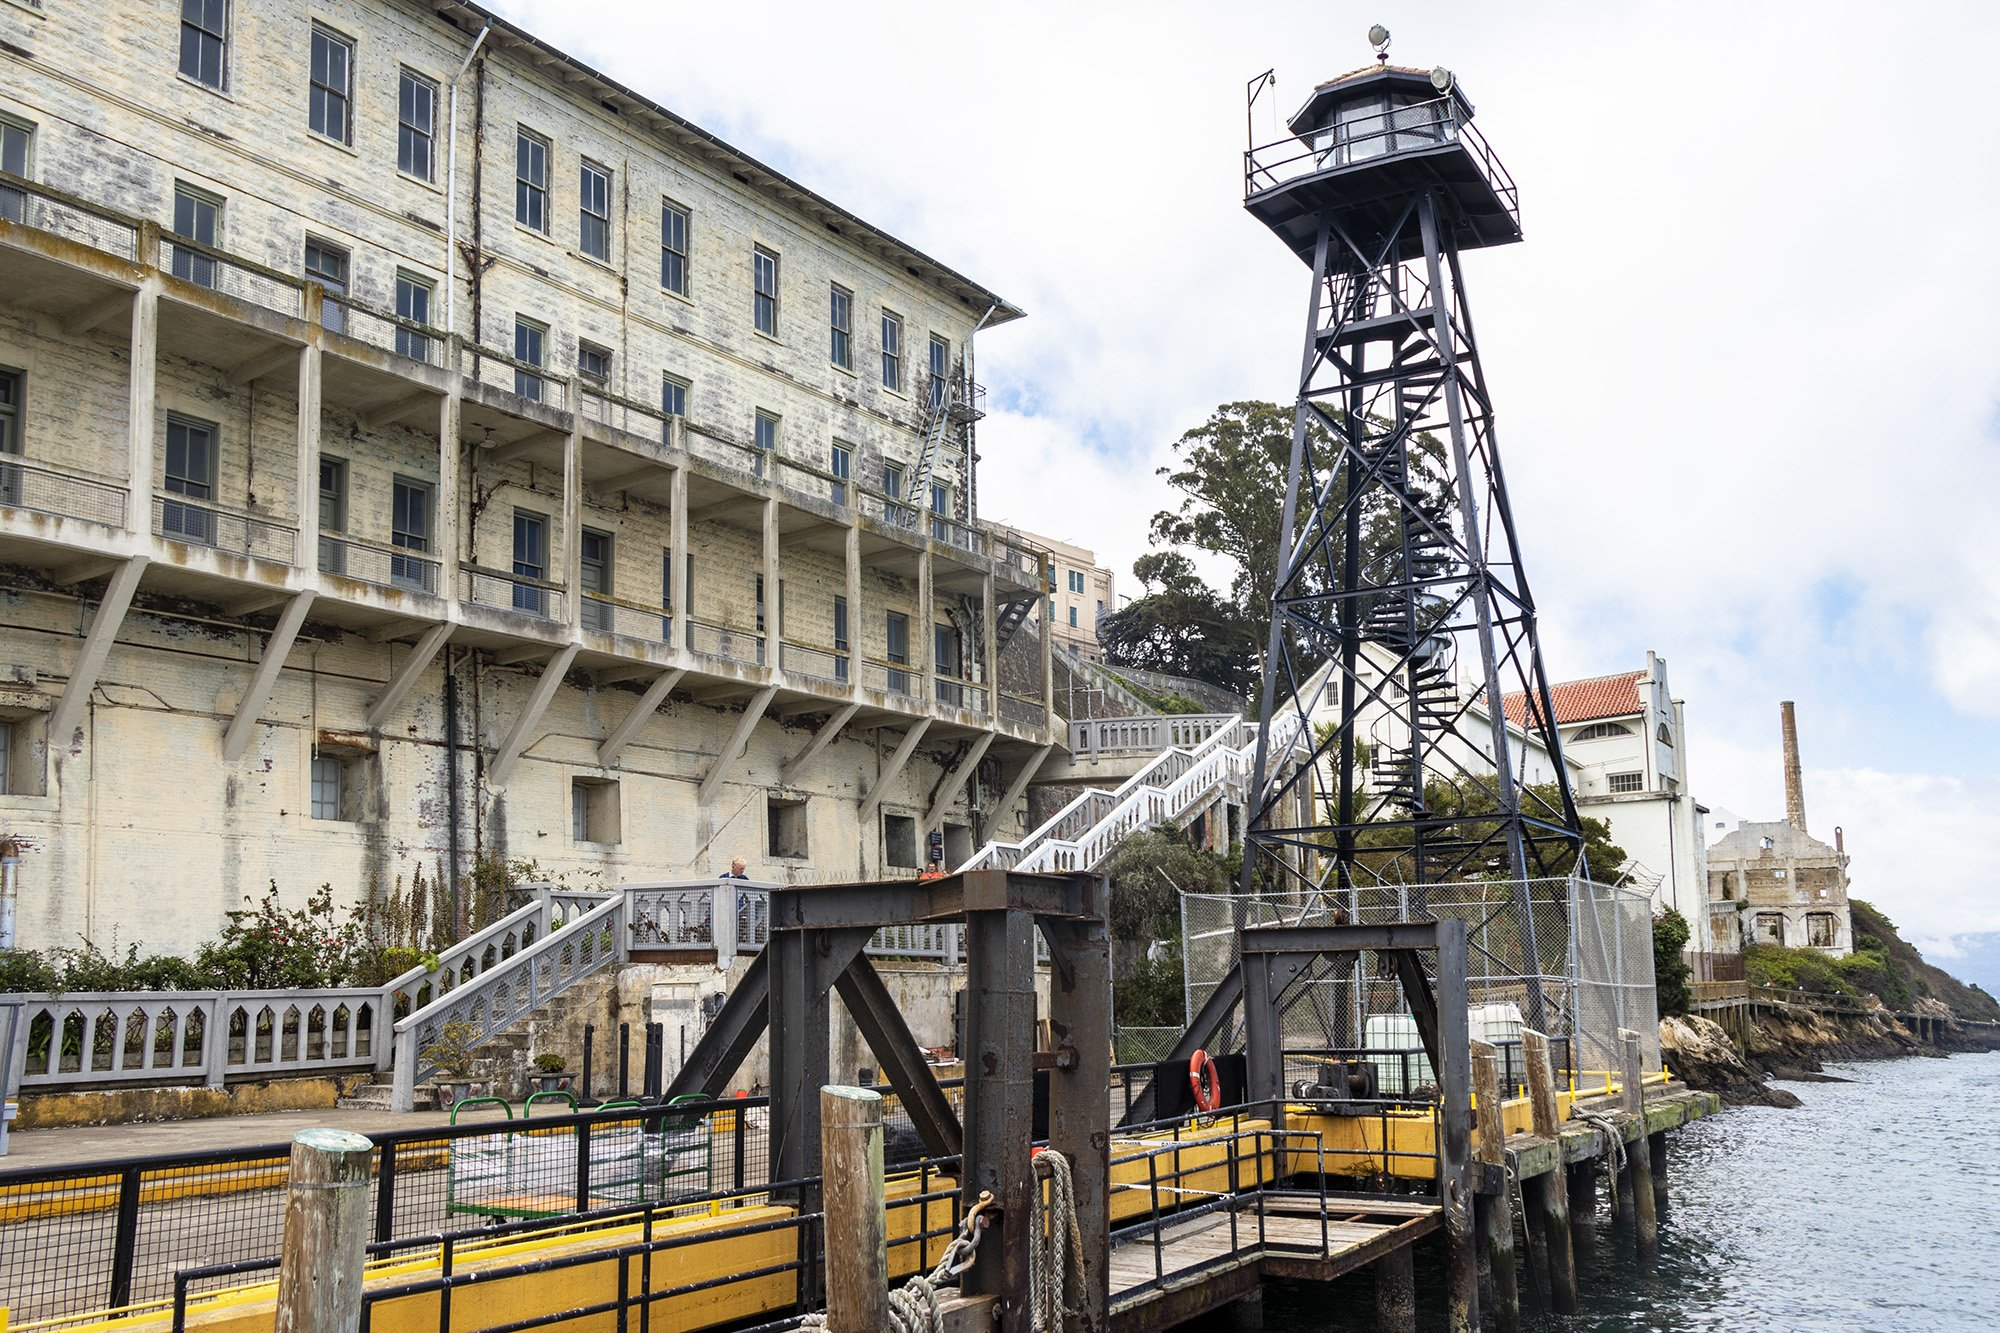 Alcatraz barracks and guard tower